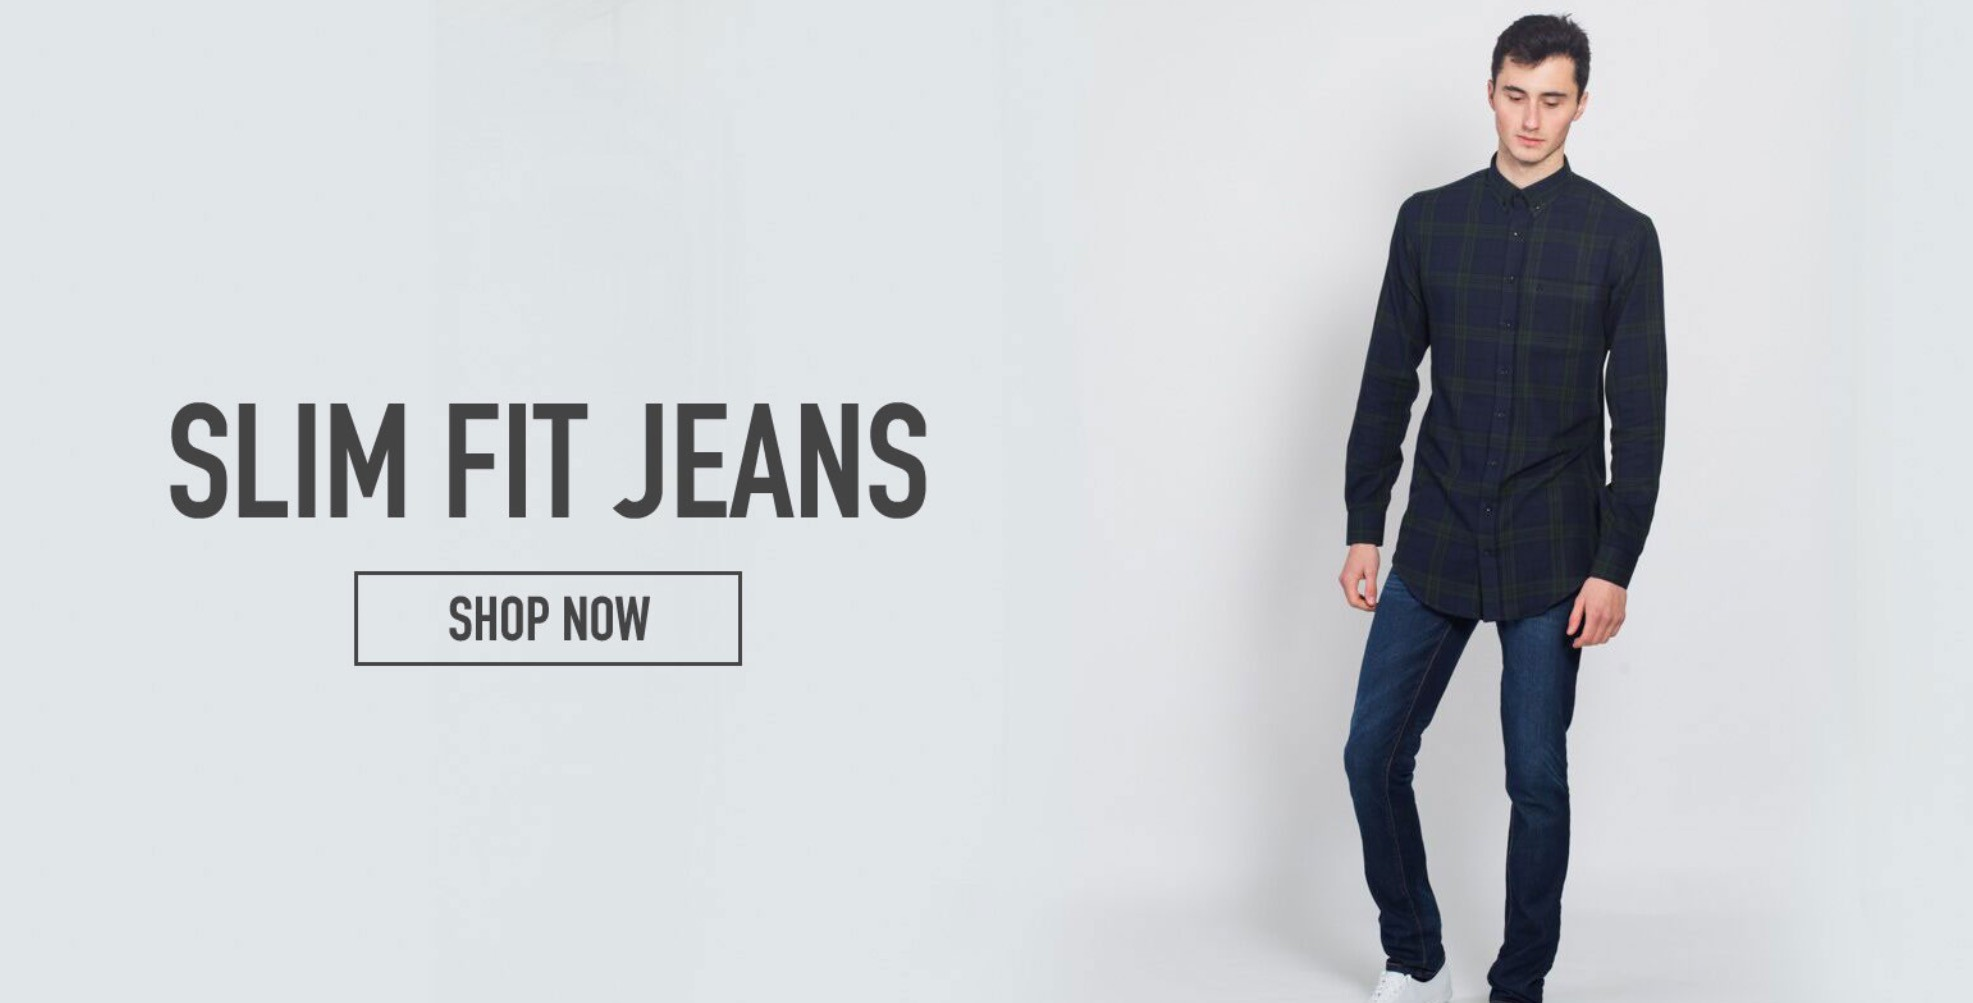 5c09c71df Jeans for Tall Skinny Guys: My New favorites from 2tall.com